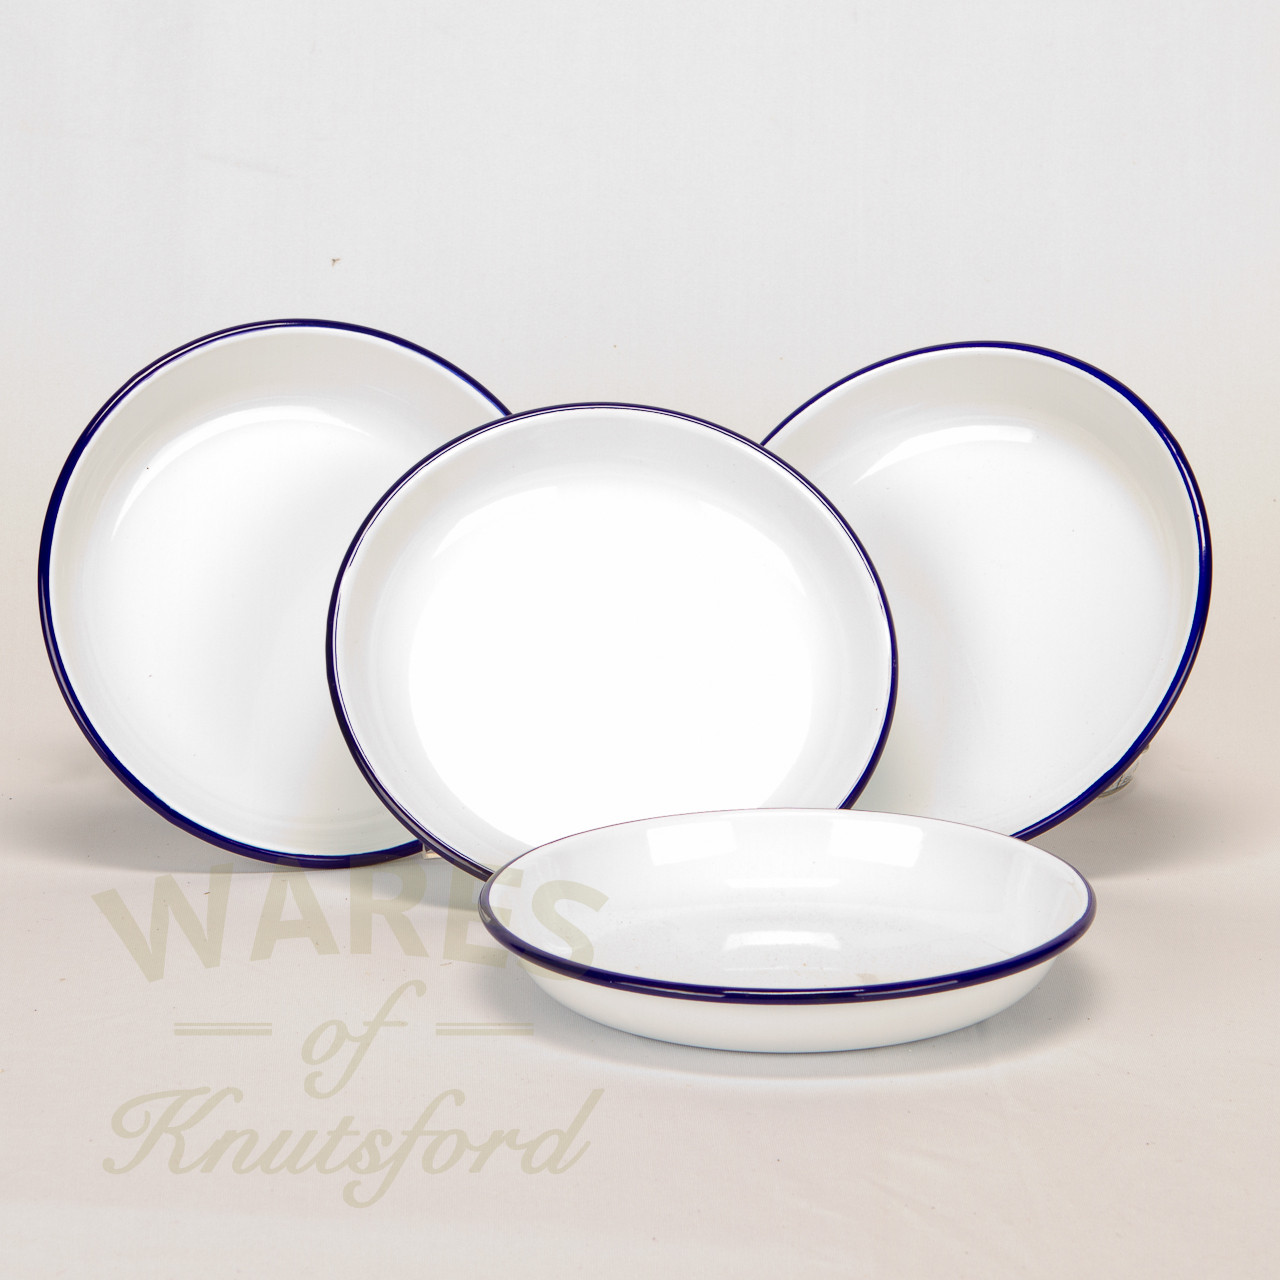 Falcon Enamel Rice Plate Set Of 4 18cm Wares Of